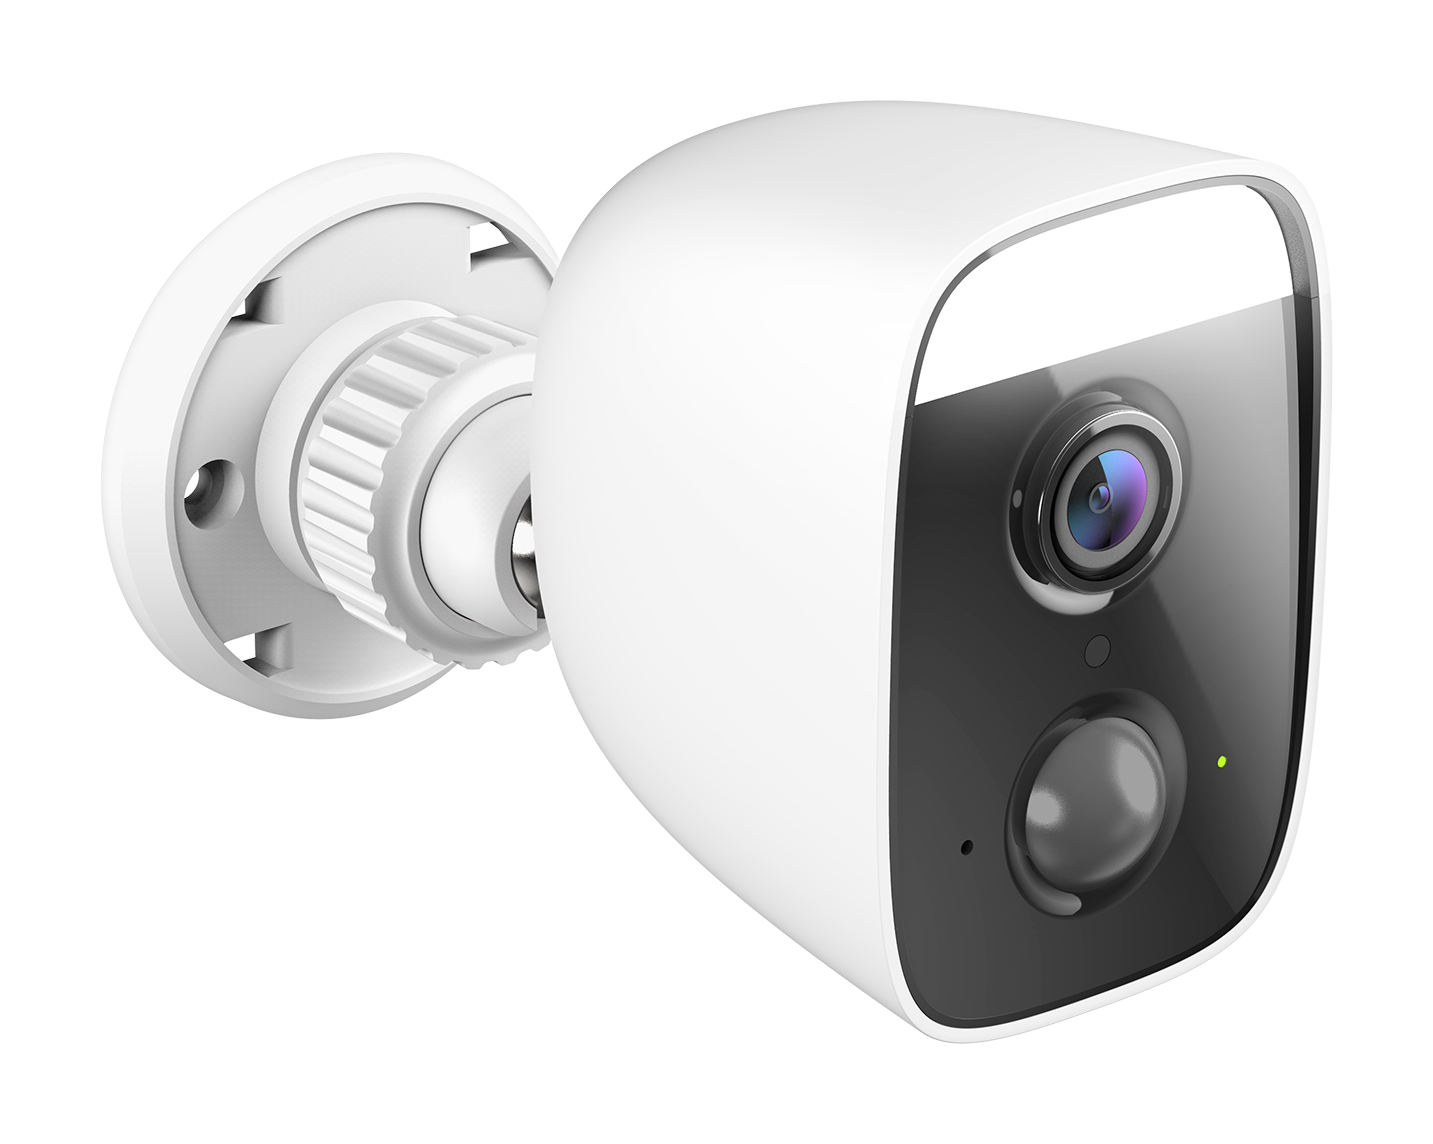 DCS 8630LH A1 Image LSide Right D Link Launch Two AI Based mydlink Security Cameras